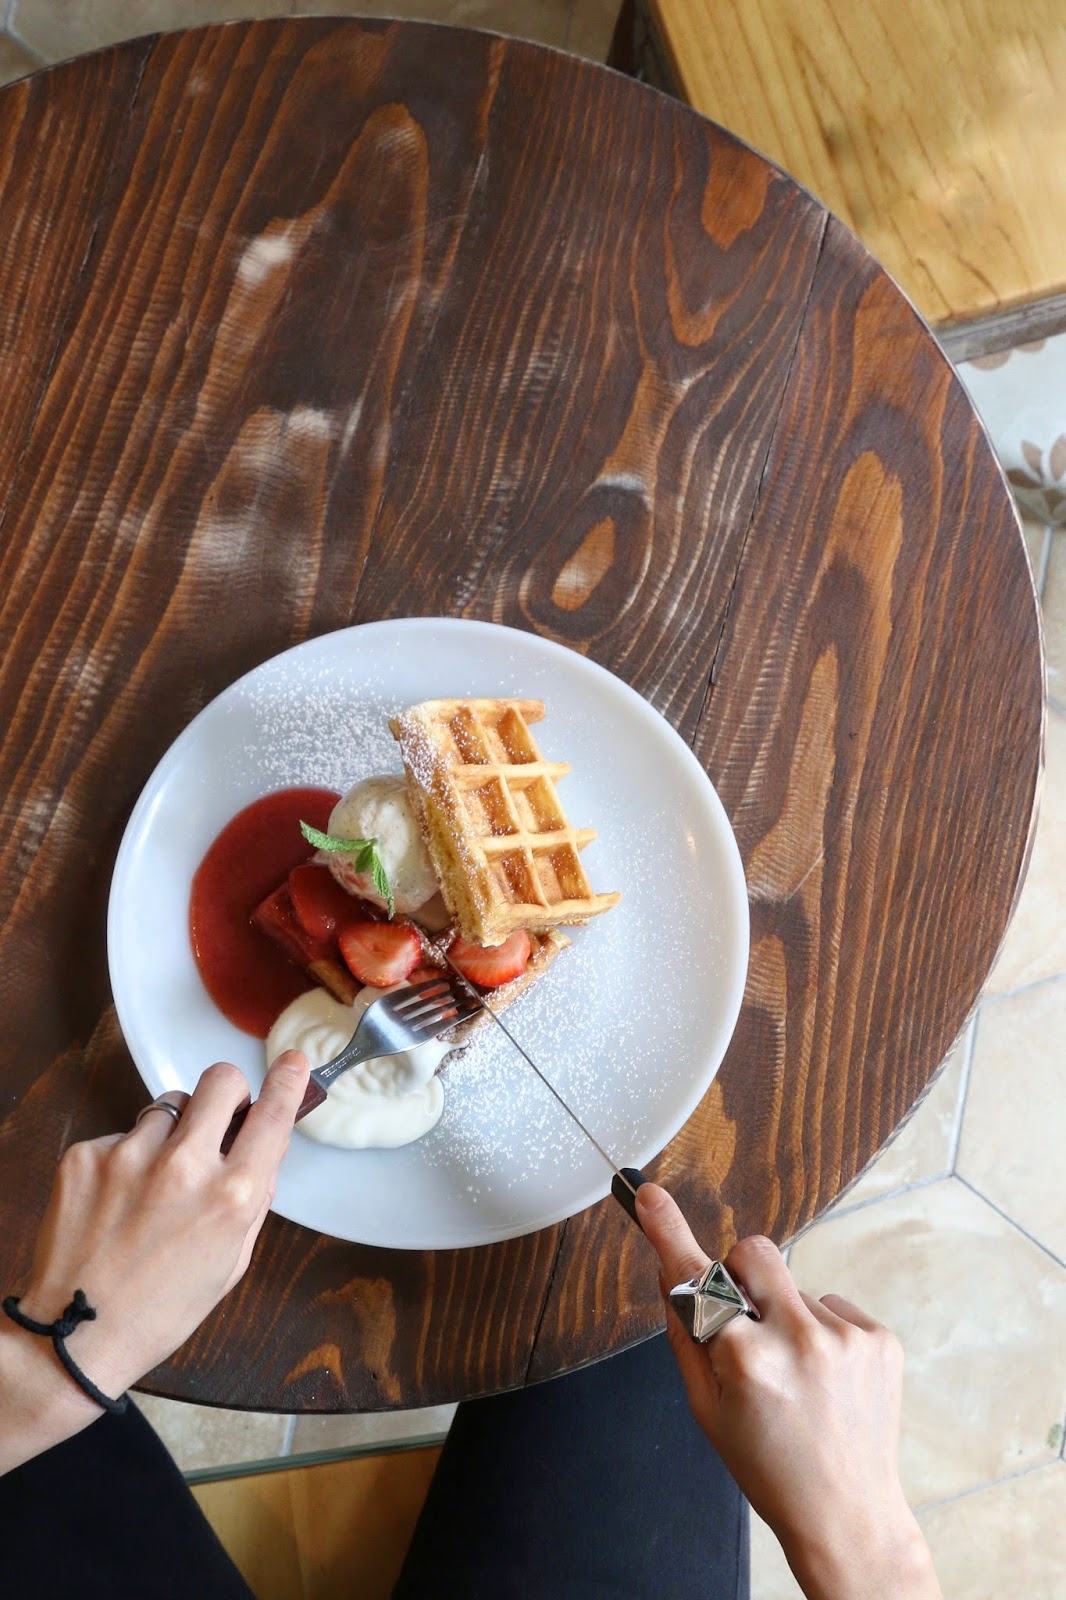 Artisan Garden Cafe, Sai Ying Pun, Strawberry Waffle Sandwich, Plain Yogurt